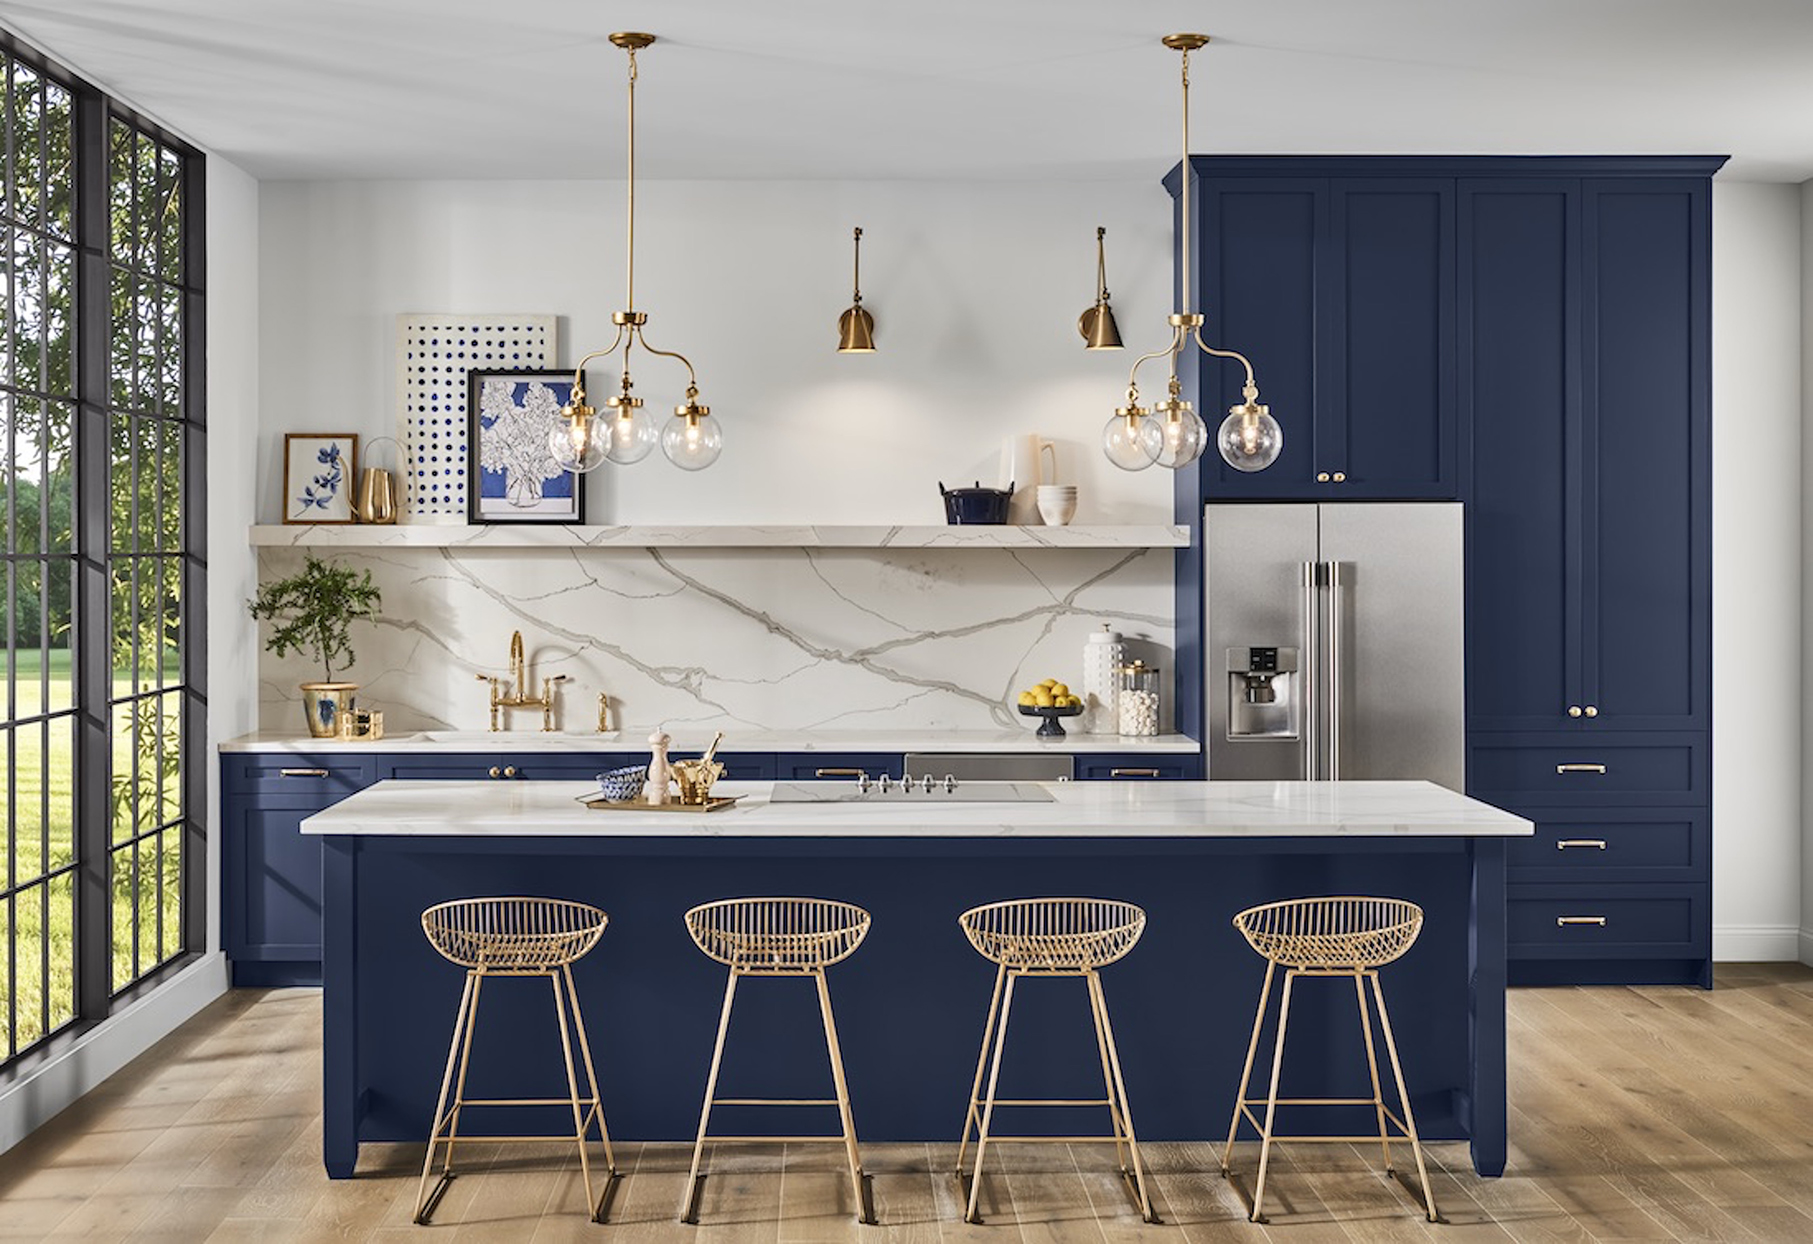 Sherwin-Williams Just Announced Its 2020 Color of the Year and We'll Be Using It Everywhere